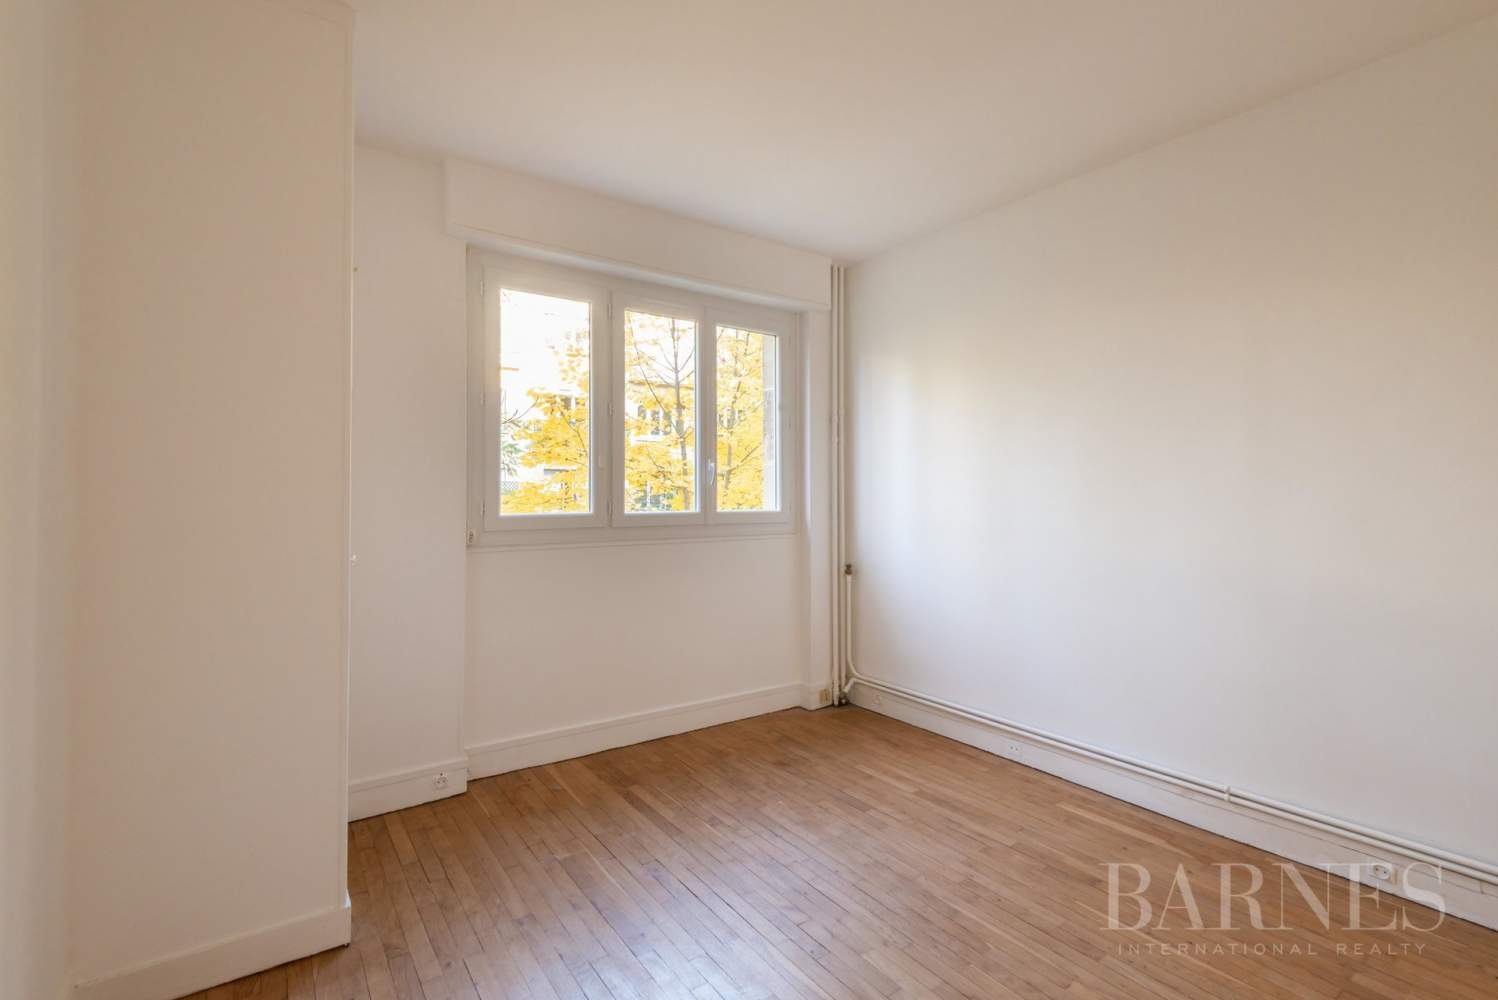 NEUILLY CHEZY APPARTEMENT 3 CHAMBRES VIDE PARKING BALCON picture 8